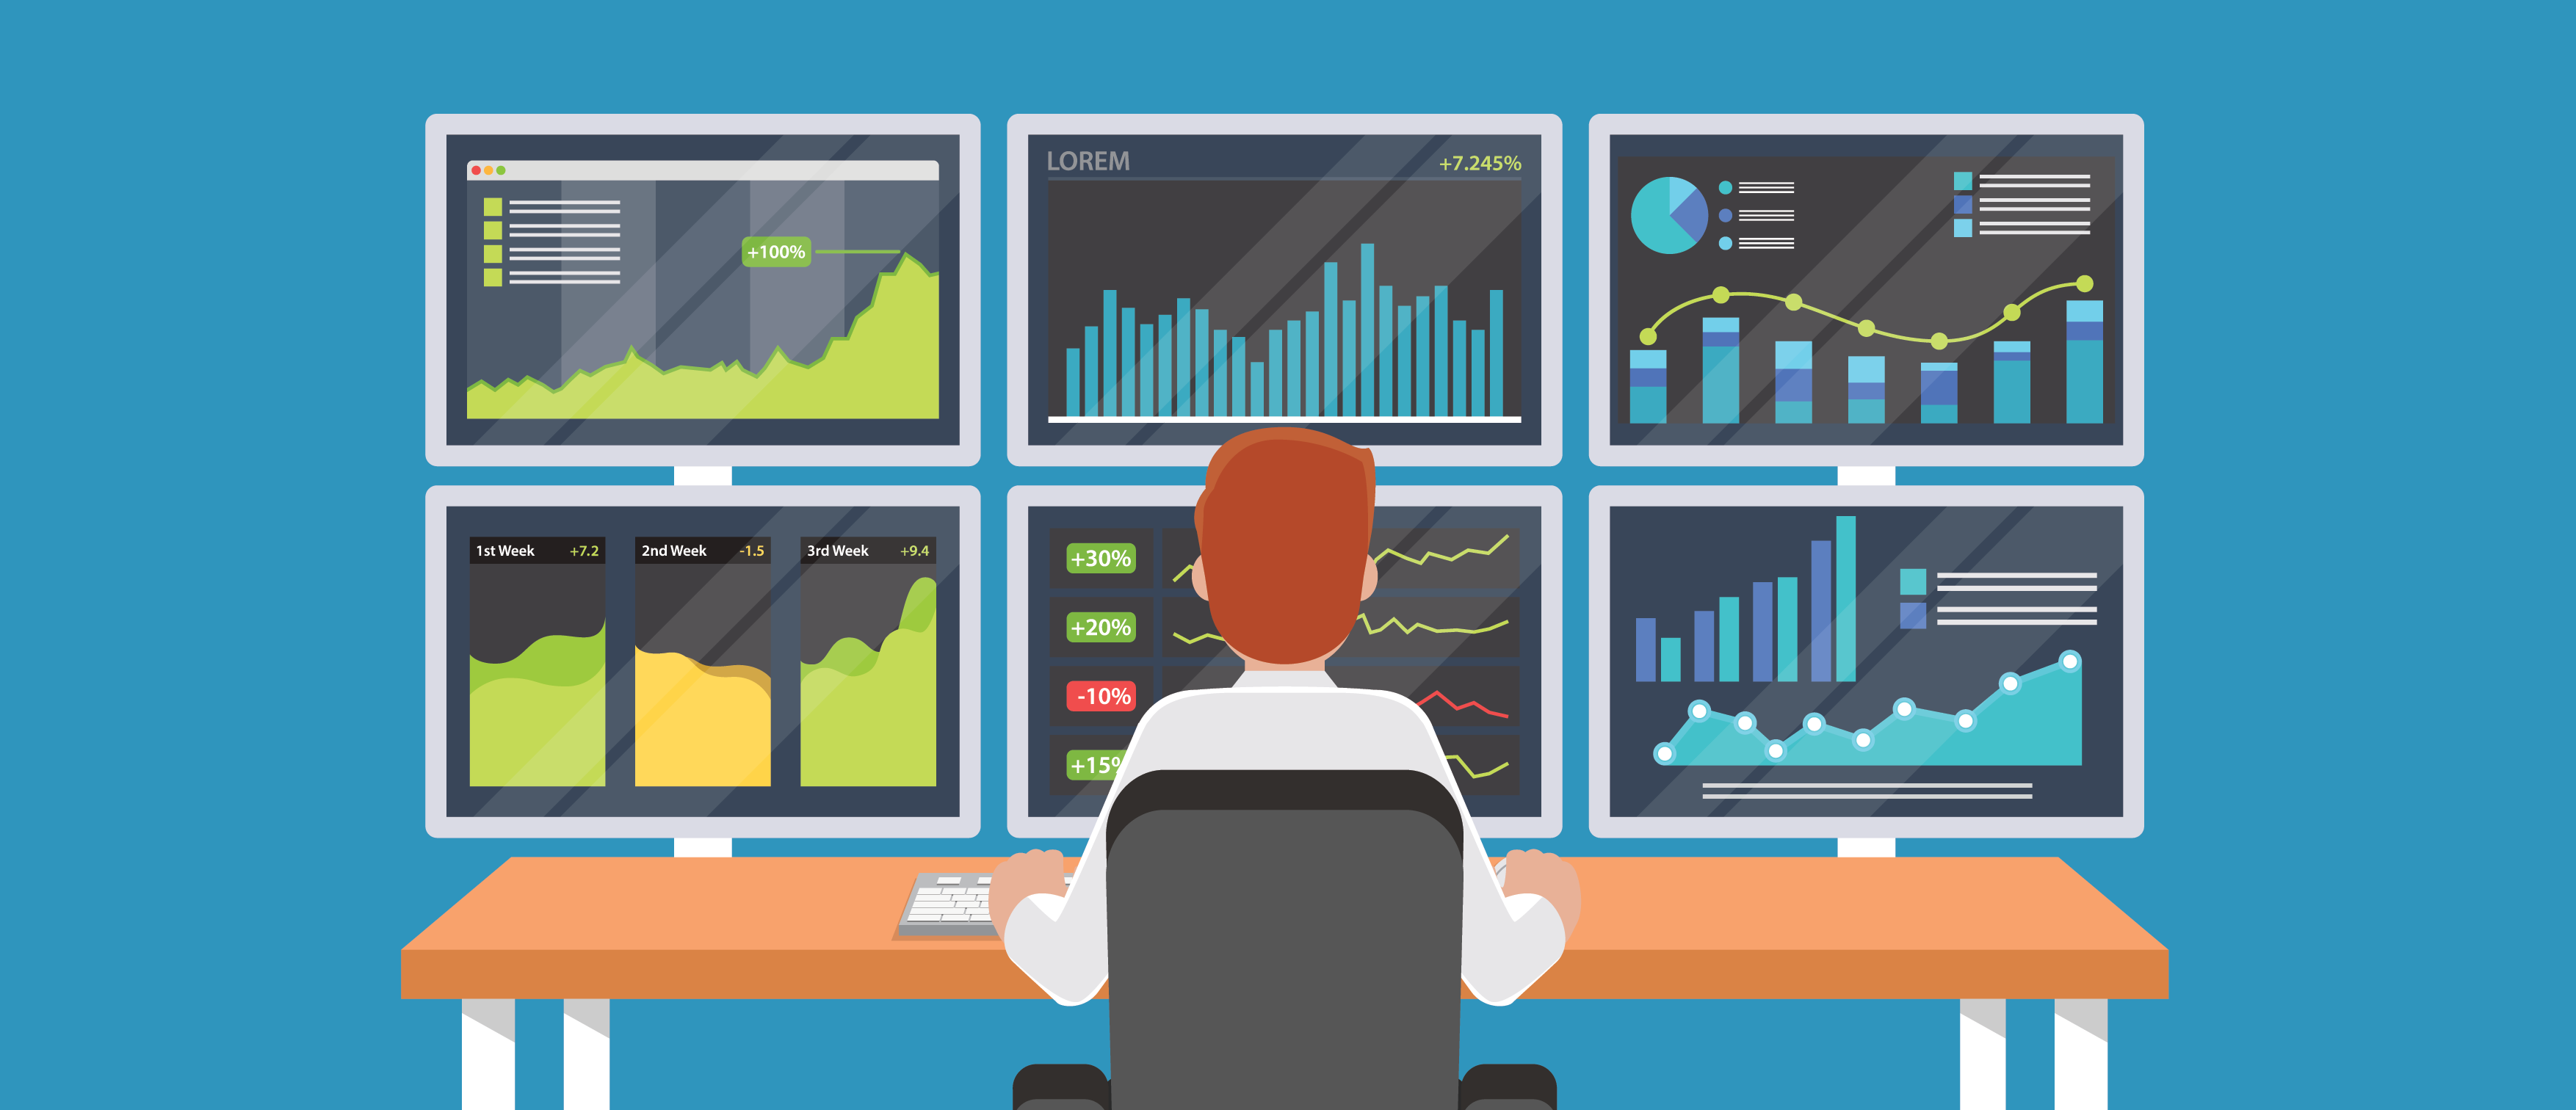 Businessman or stock market trader working at desk with multiple screens showing statistics